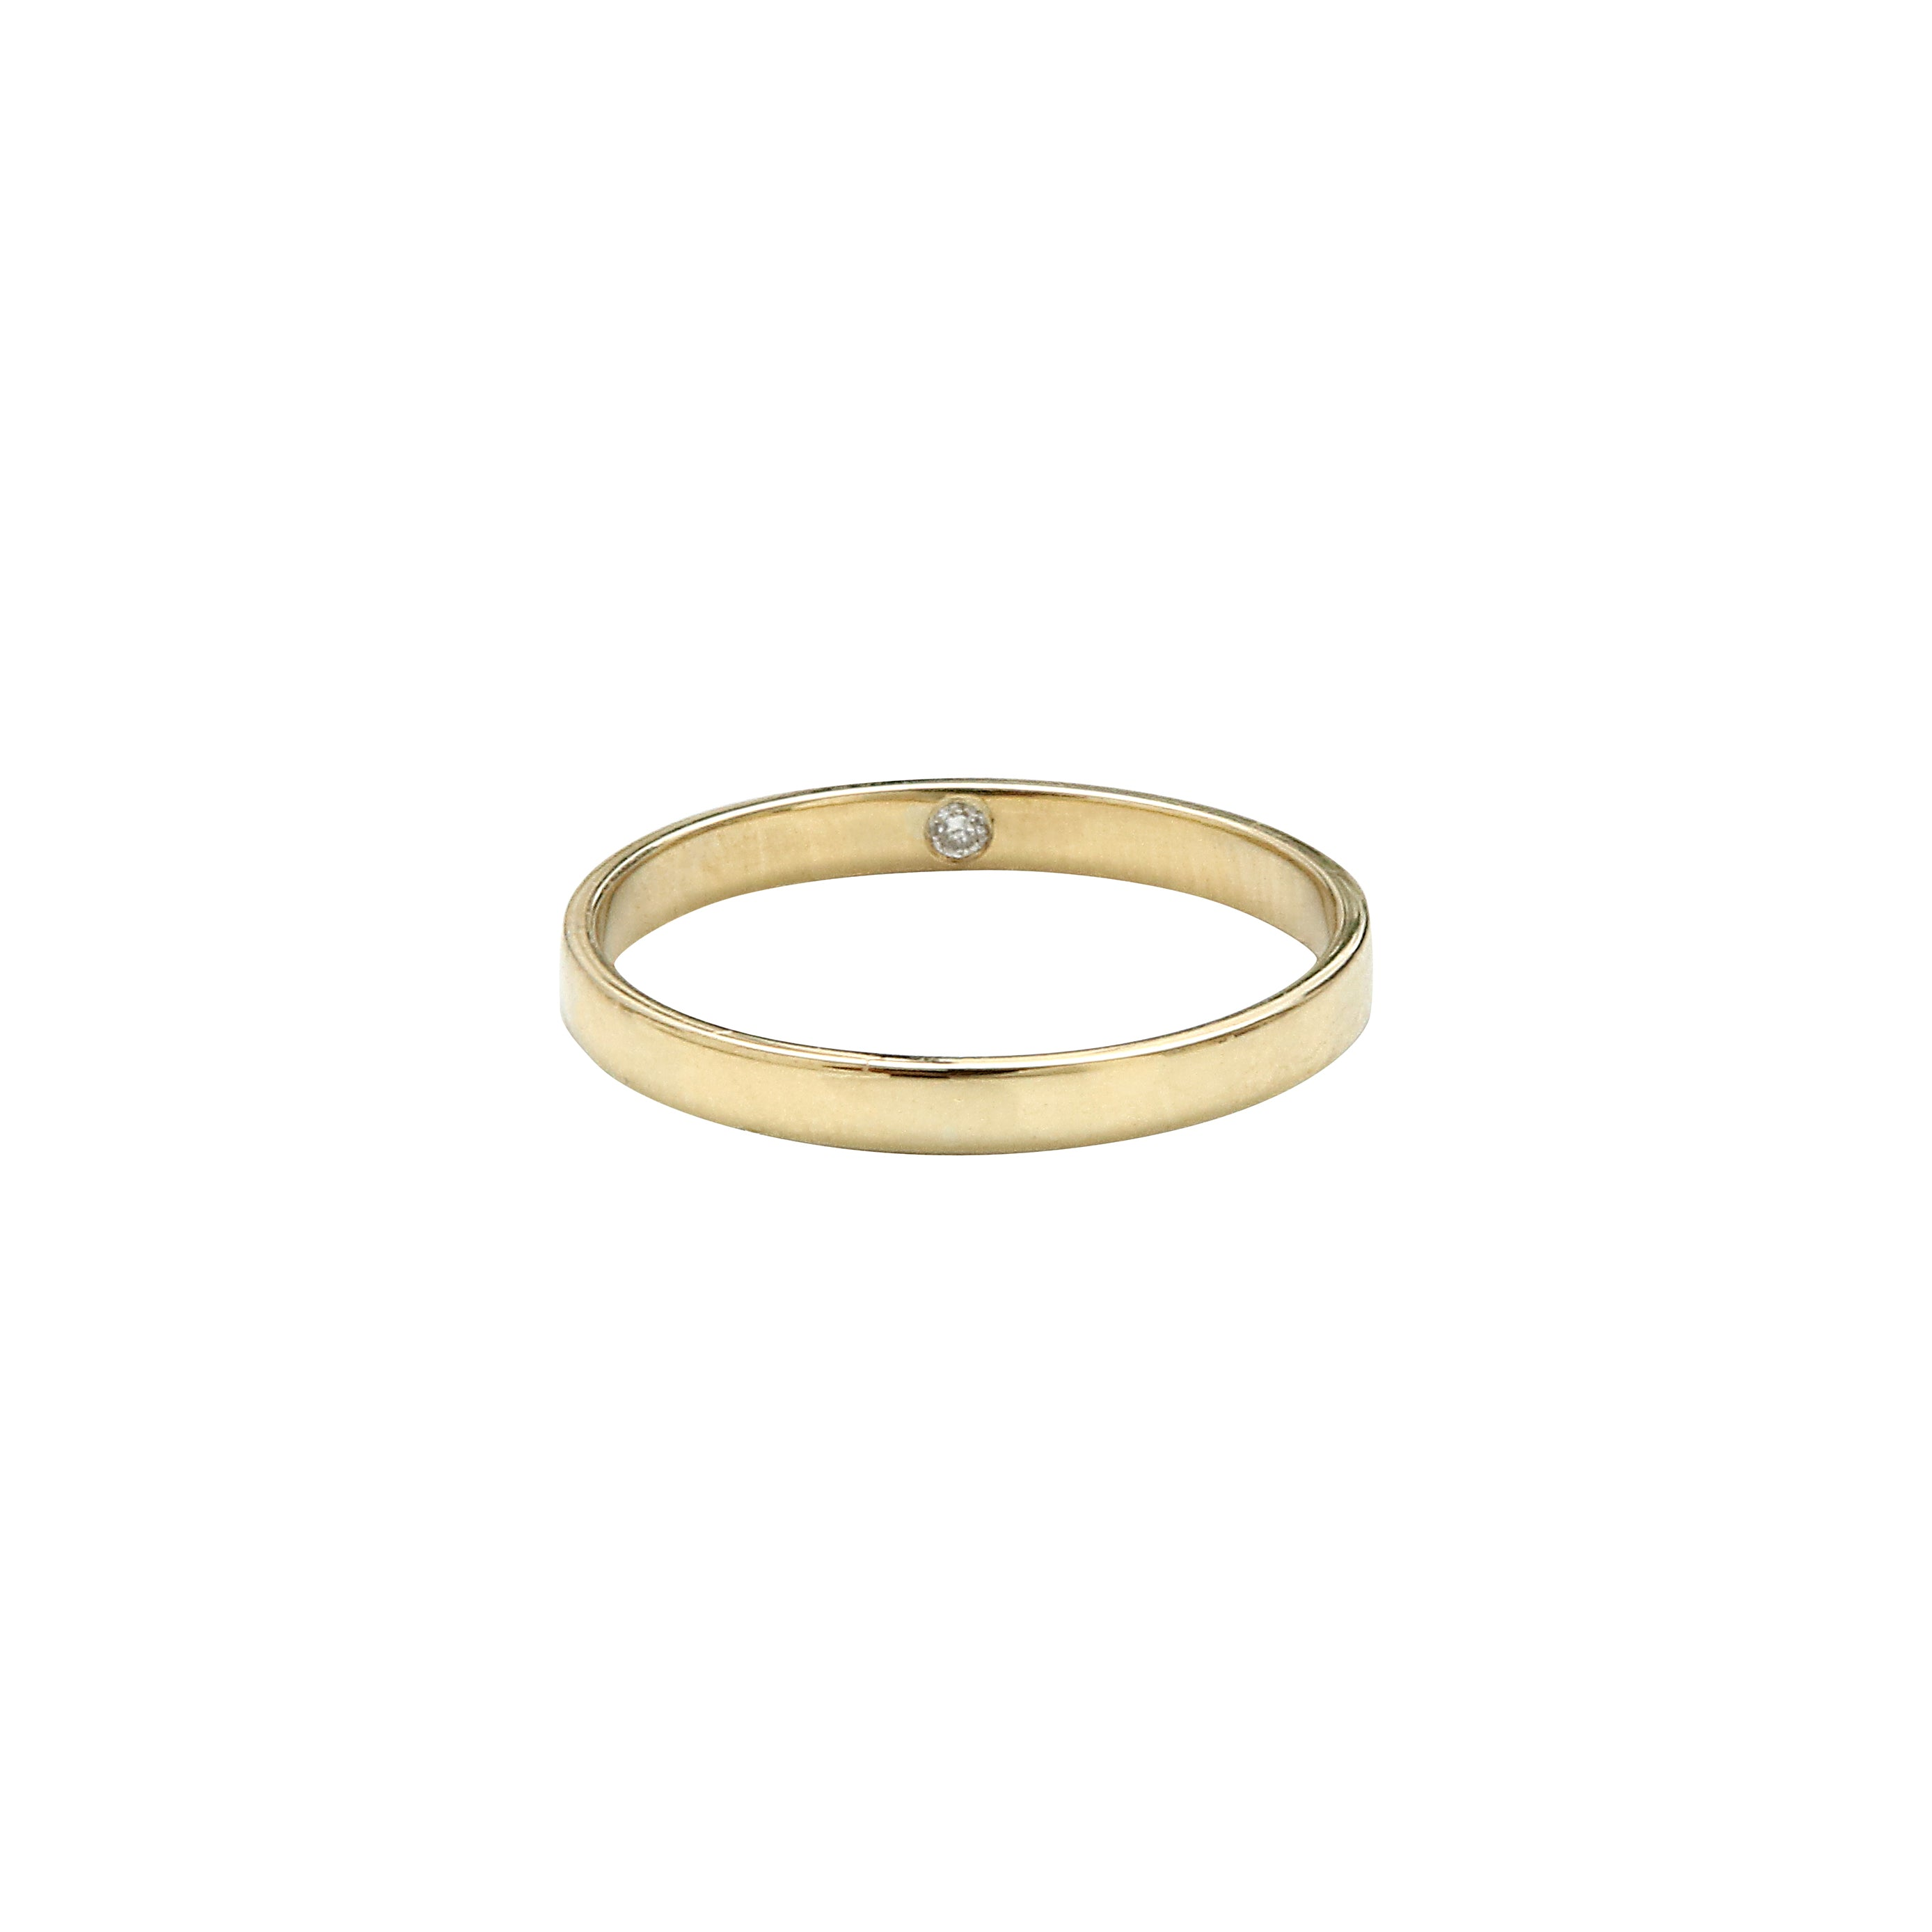 Aurore Havenne Gold and Diamond ring minimalist jewellery belgian designer bijou simple fin